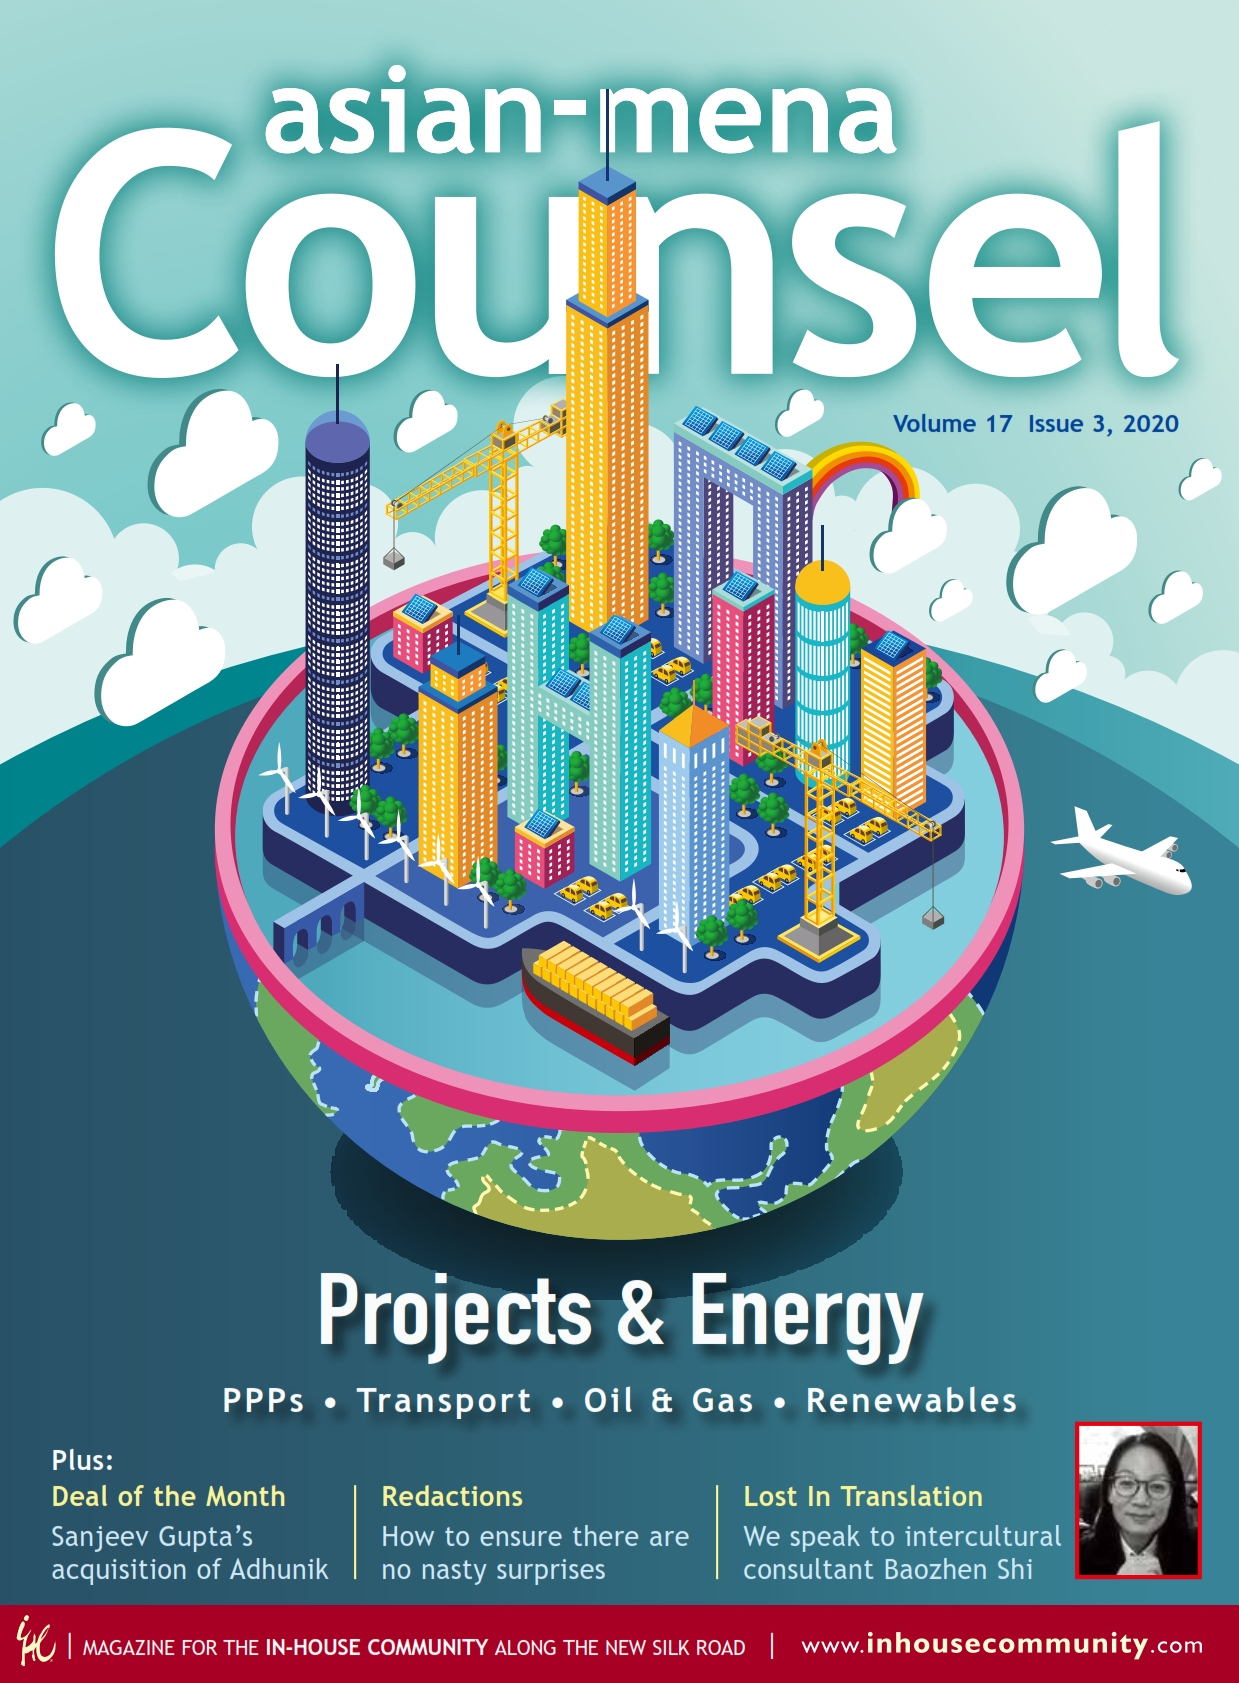 Asian-mena Counsel - Projects & Energy Report 2020